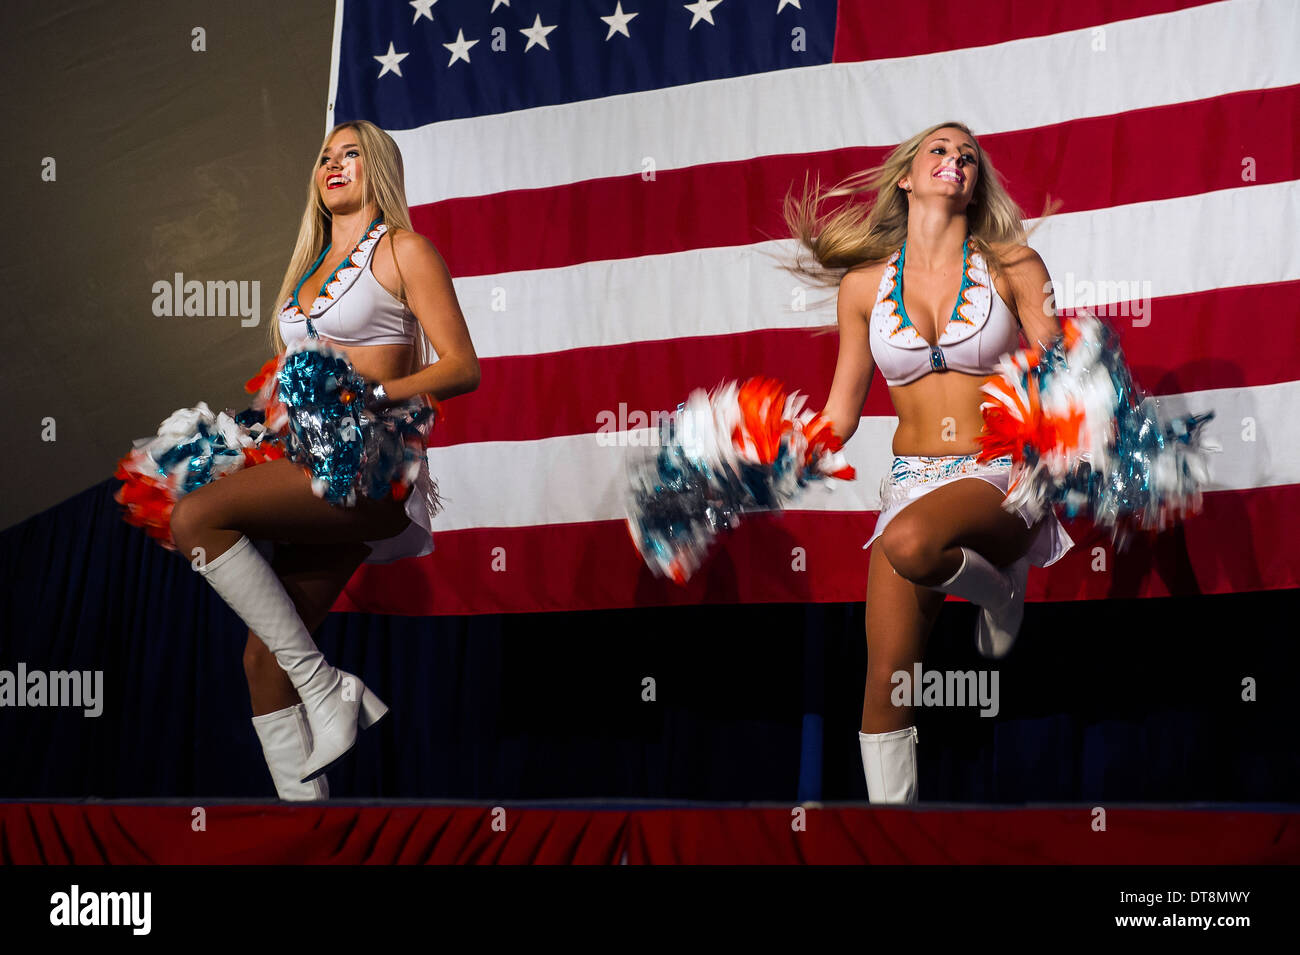 Miami Dolphins cheerleaders Lily and Alison perform cheers for deployed service members at the Manas Transit Center February 7, 2014 in Manas, Kyrgyzstan. - Stock Image